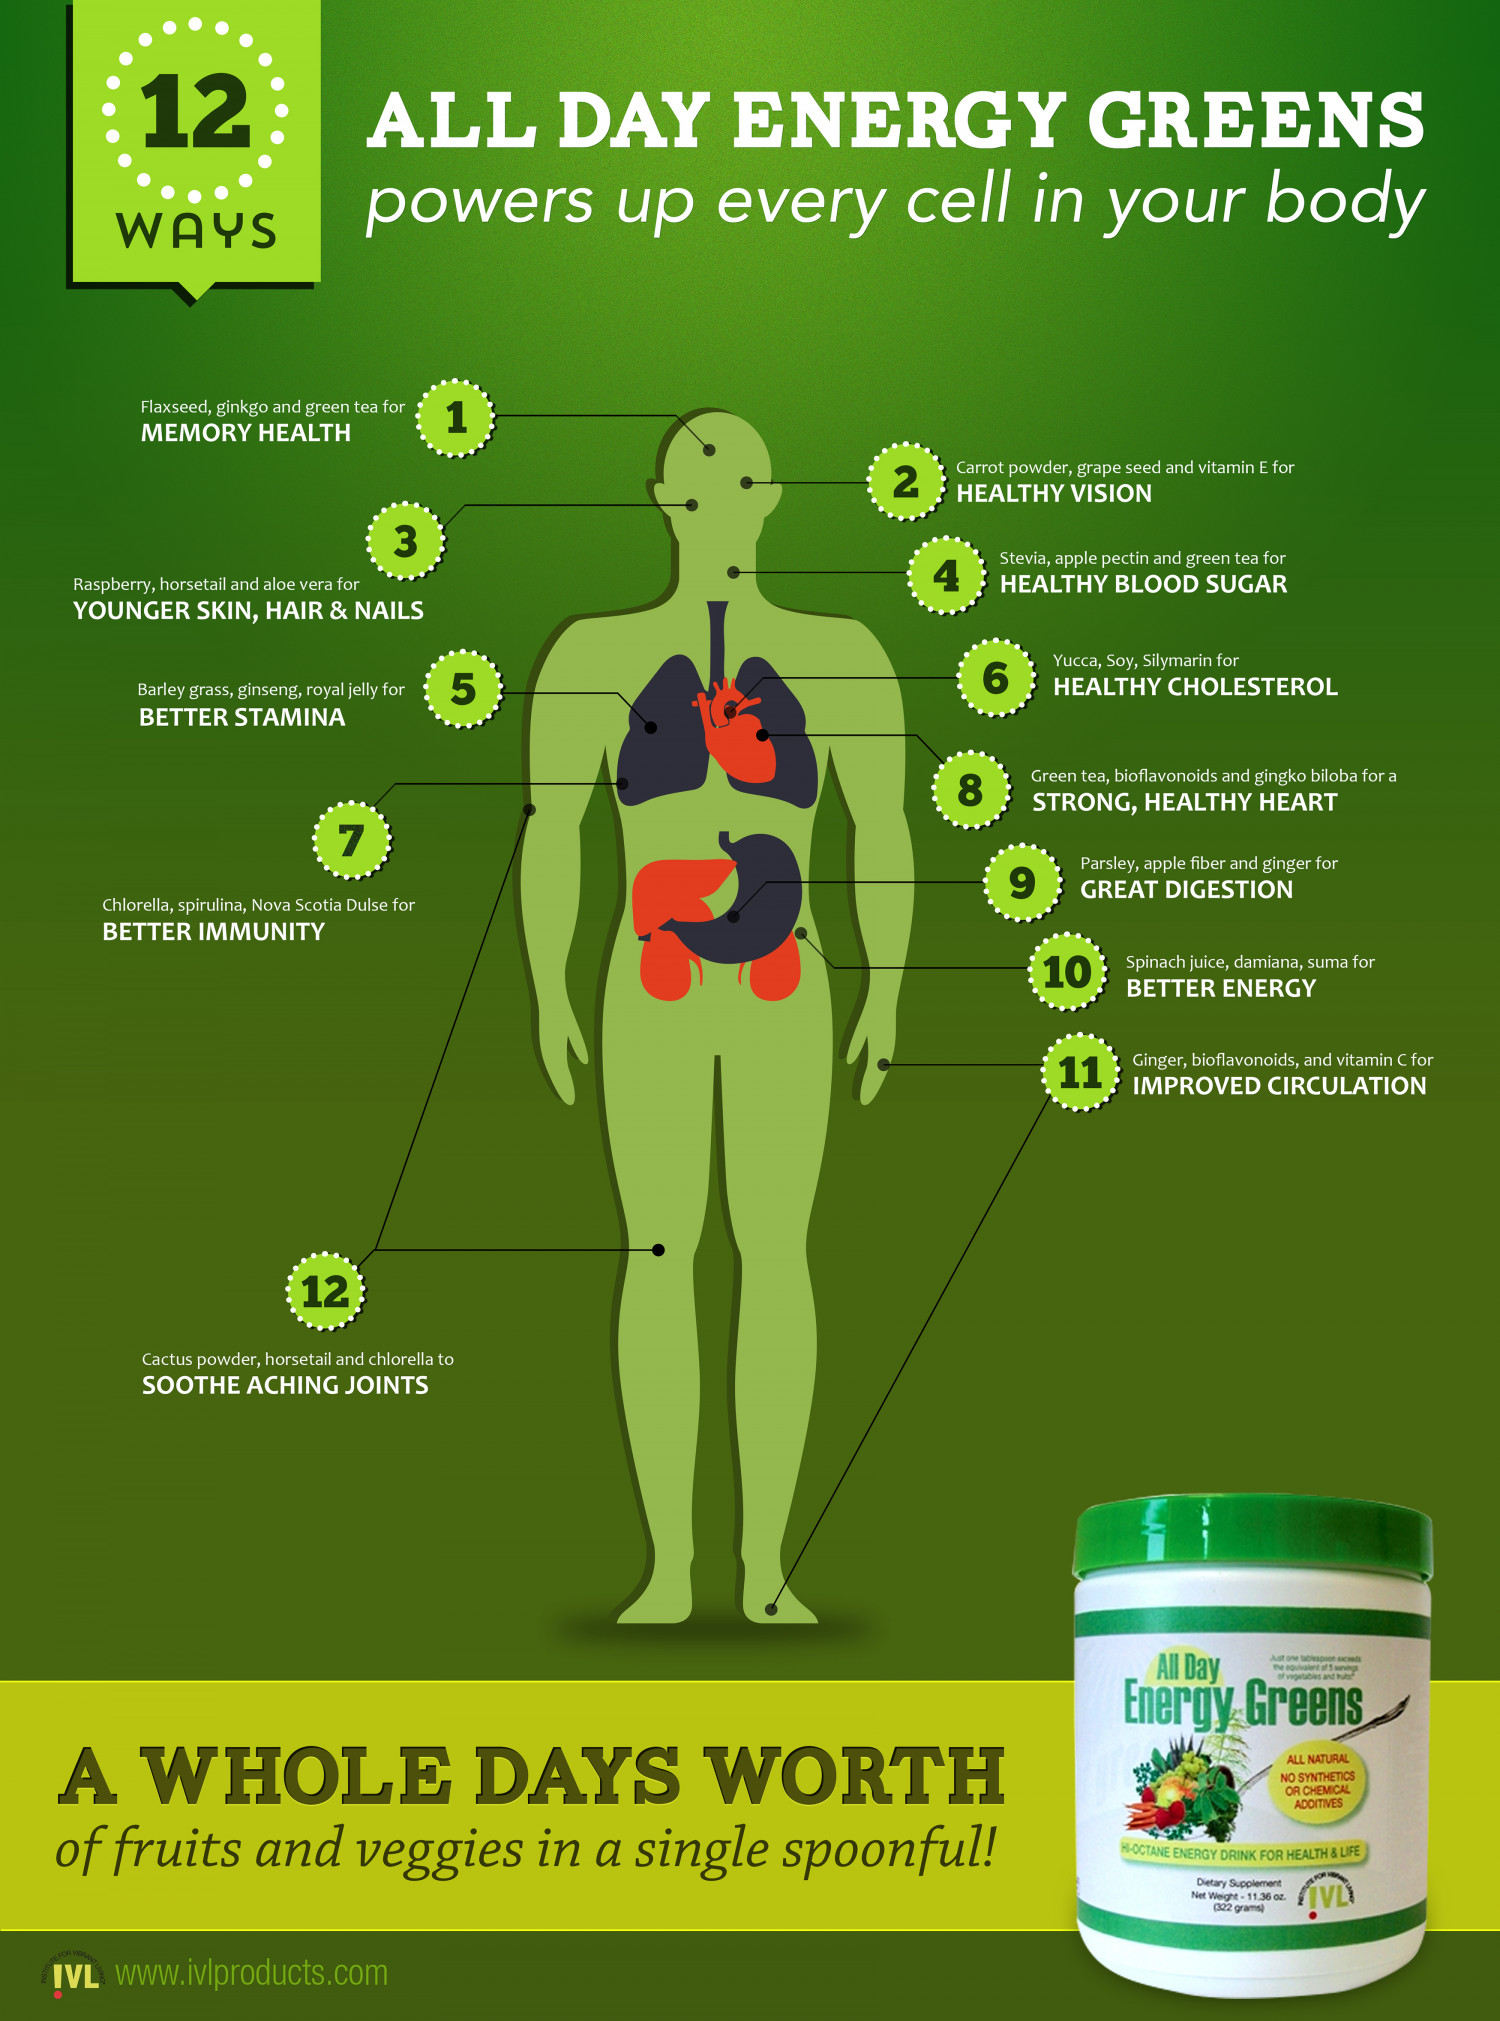 12 Ways to Power up Every Cell in Your Body Infographic